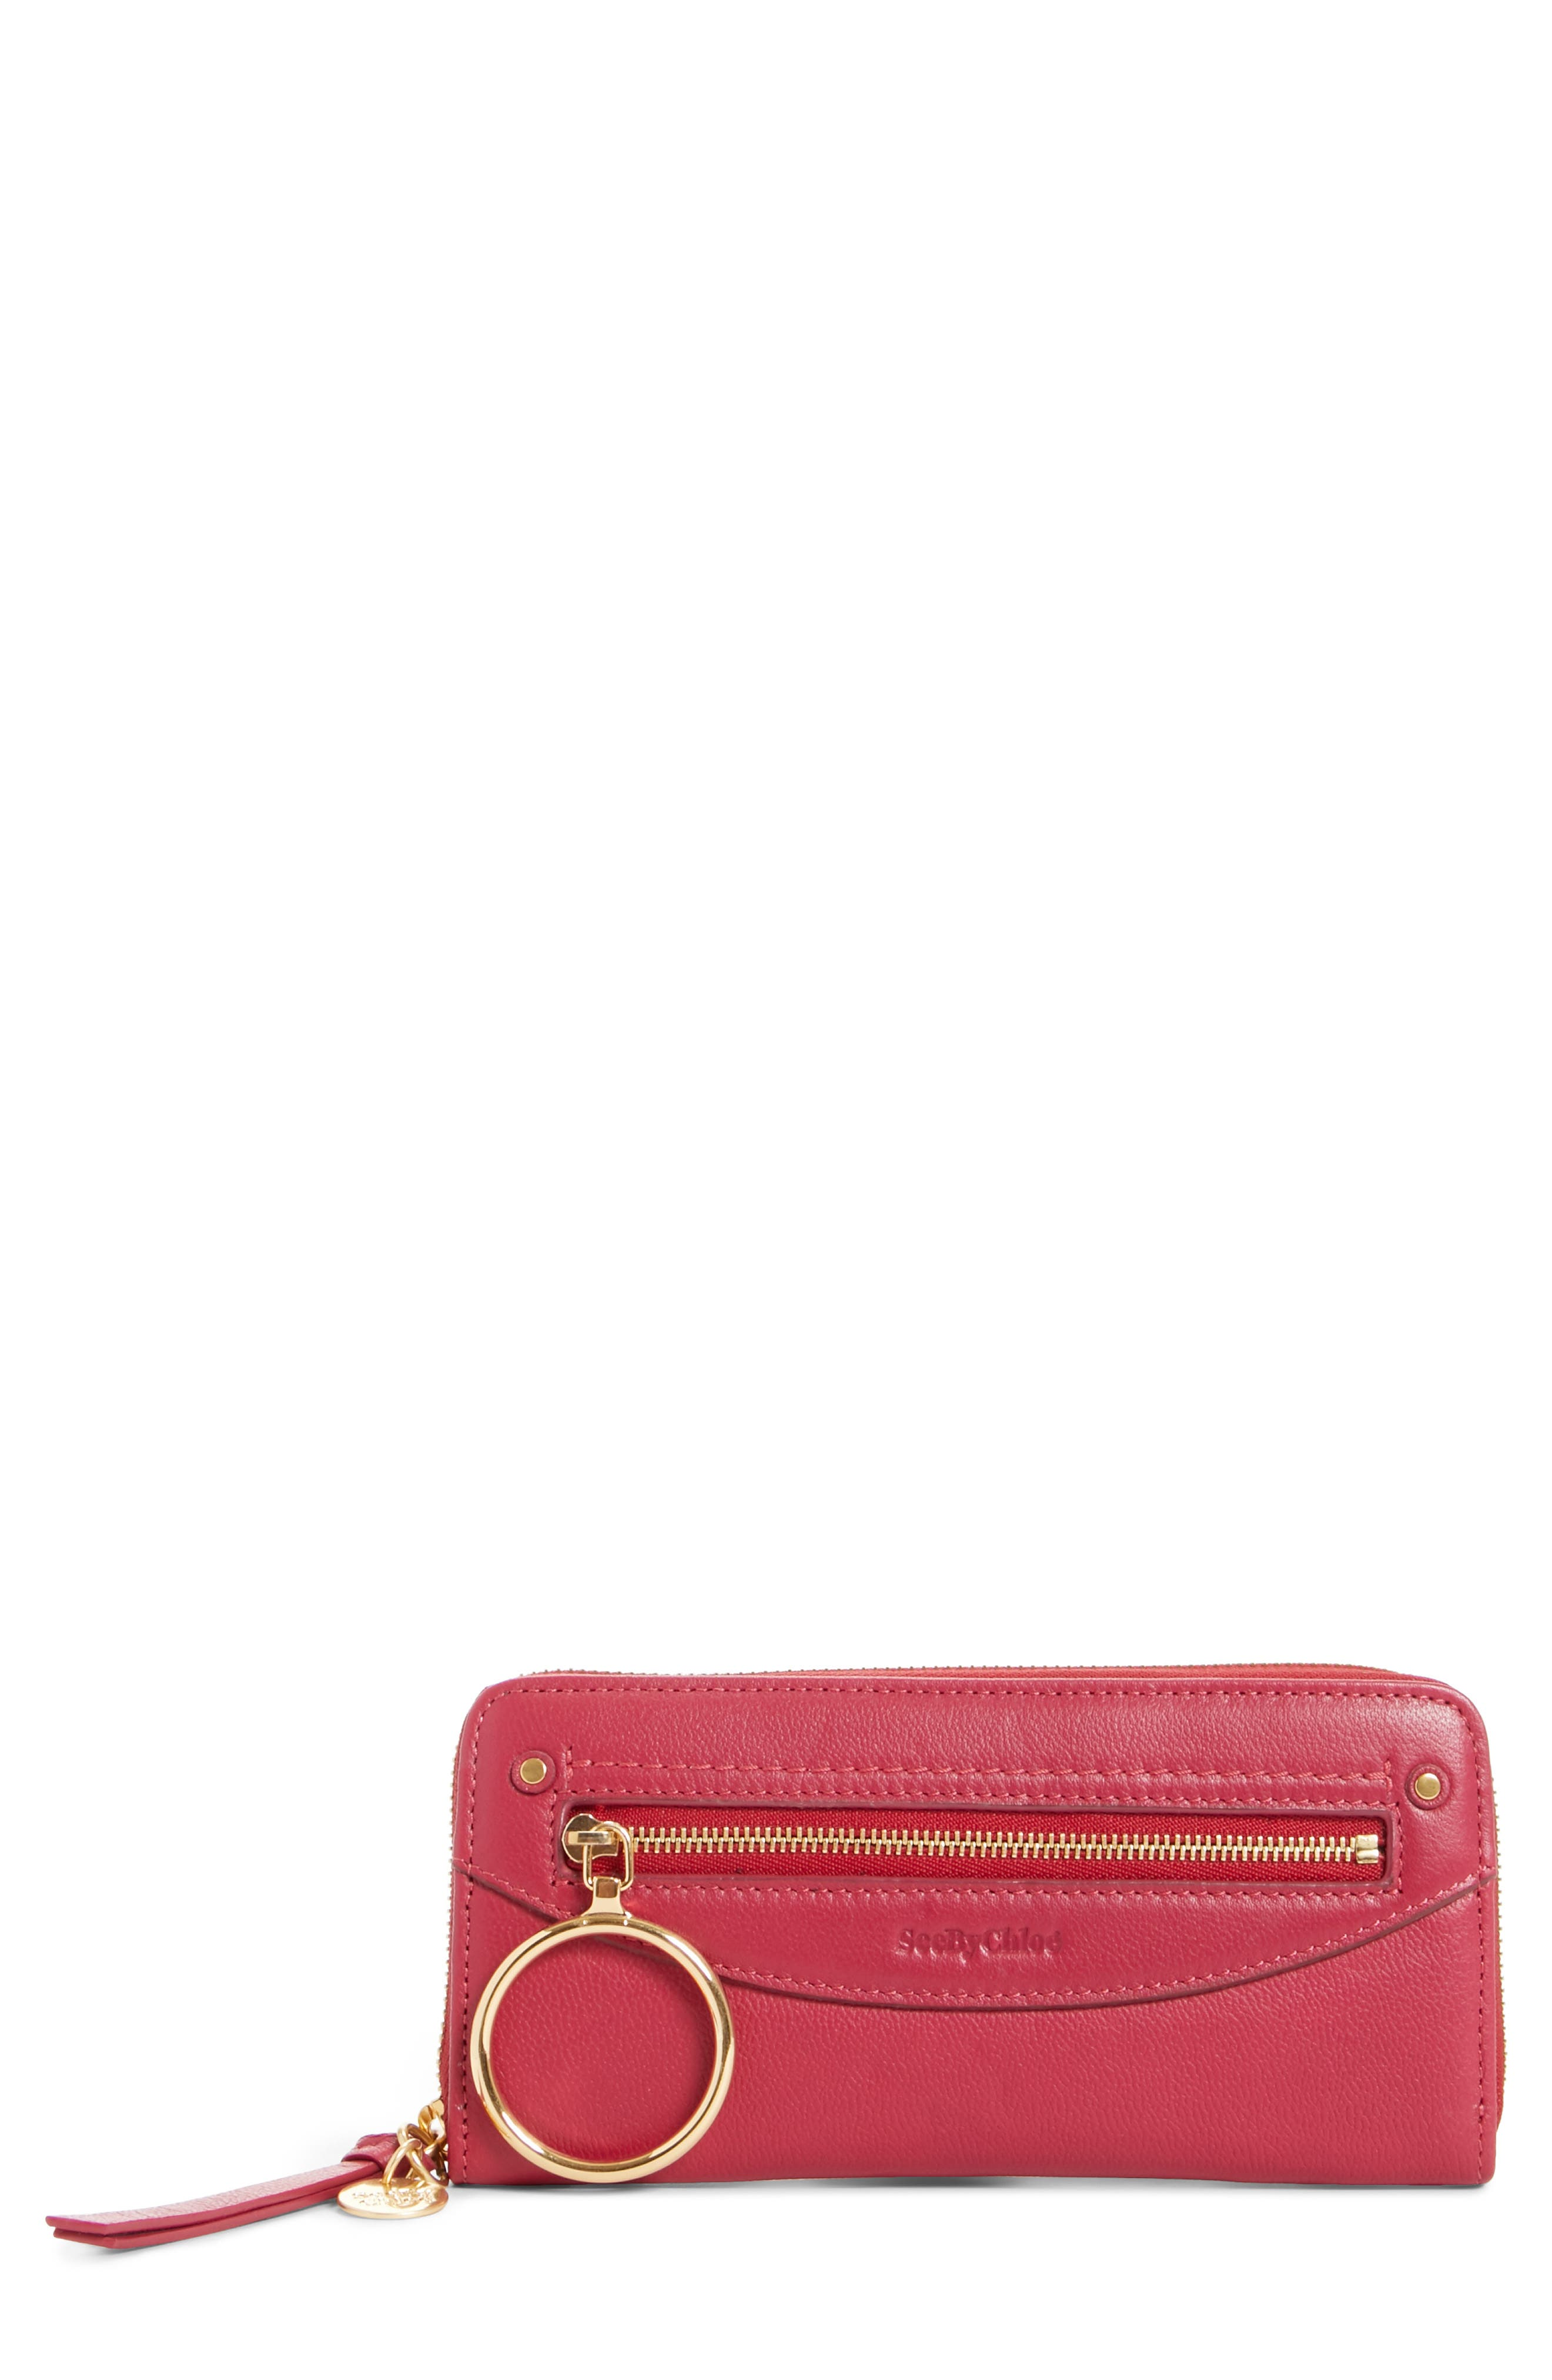 Mino Zip Around Leather Wallet,                         Main,                         color, Berry Pink